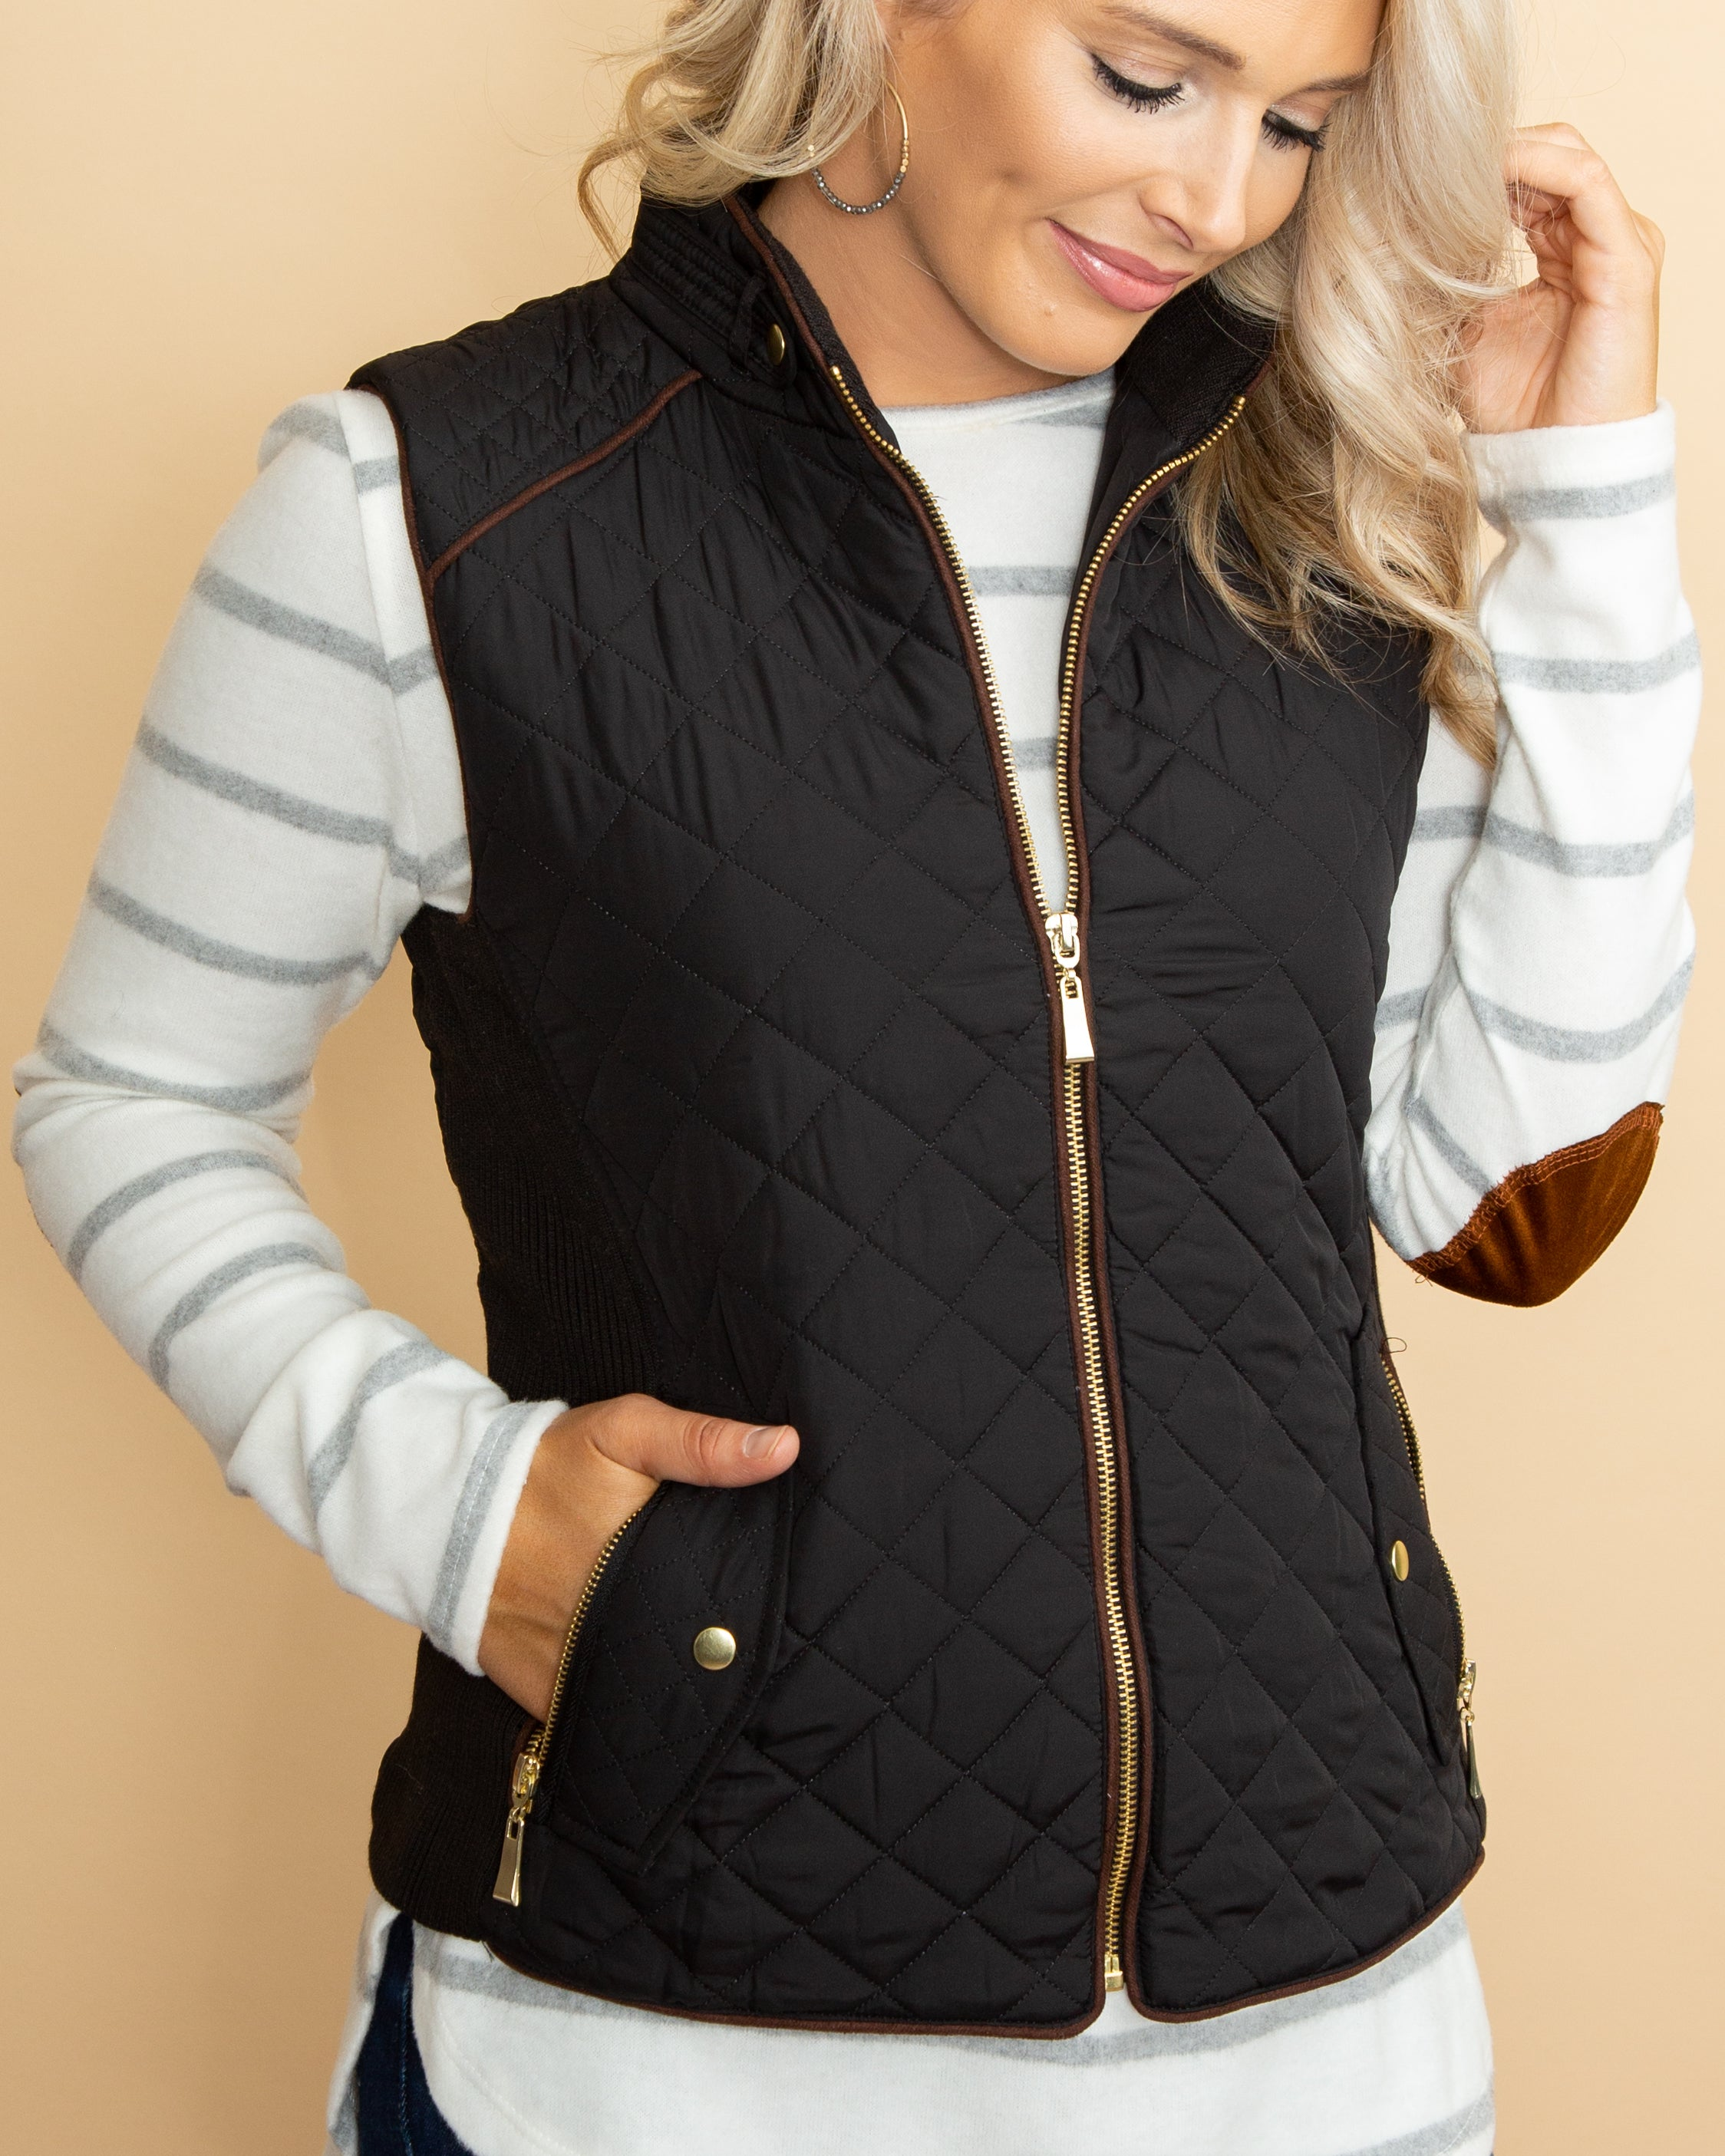 Vice Versa Quilted Vest - Black